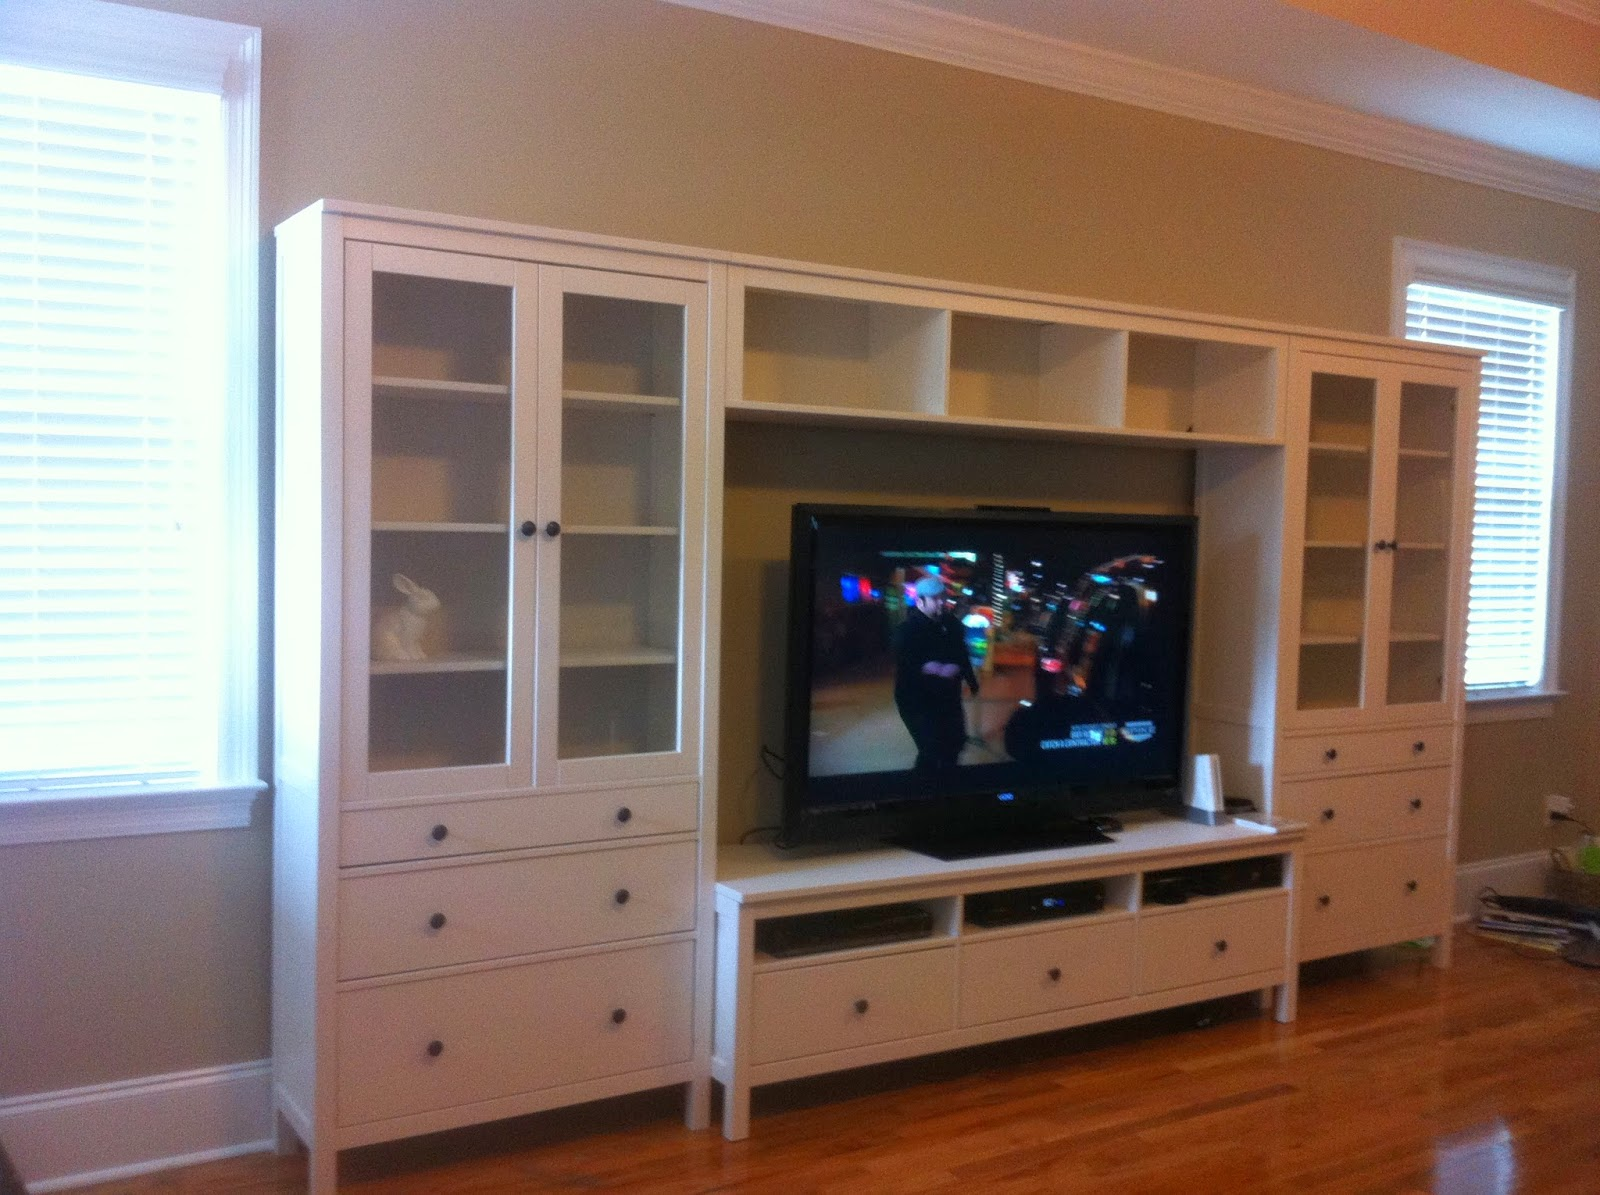 Wife on a Budget Entertainment Center Upgrade